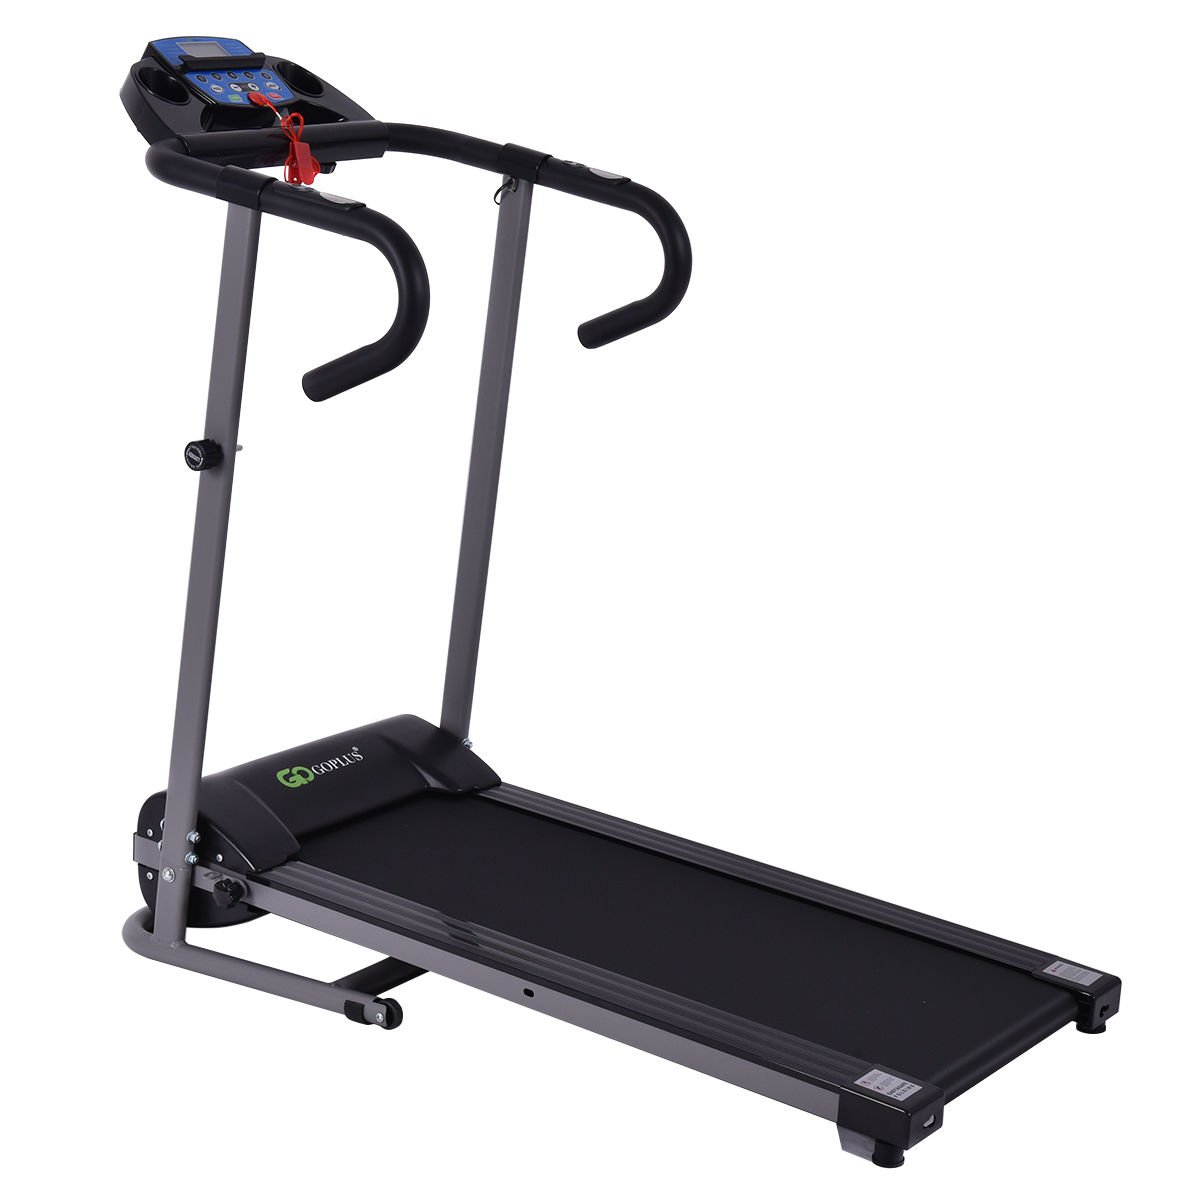 Goplus 1100W Folding Treadmill Electric Motorized Power Fitness Running Machine w/ Support